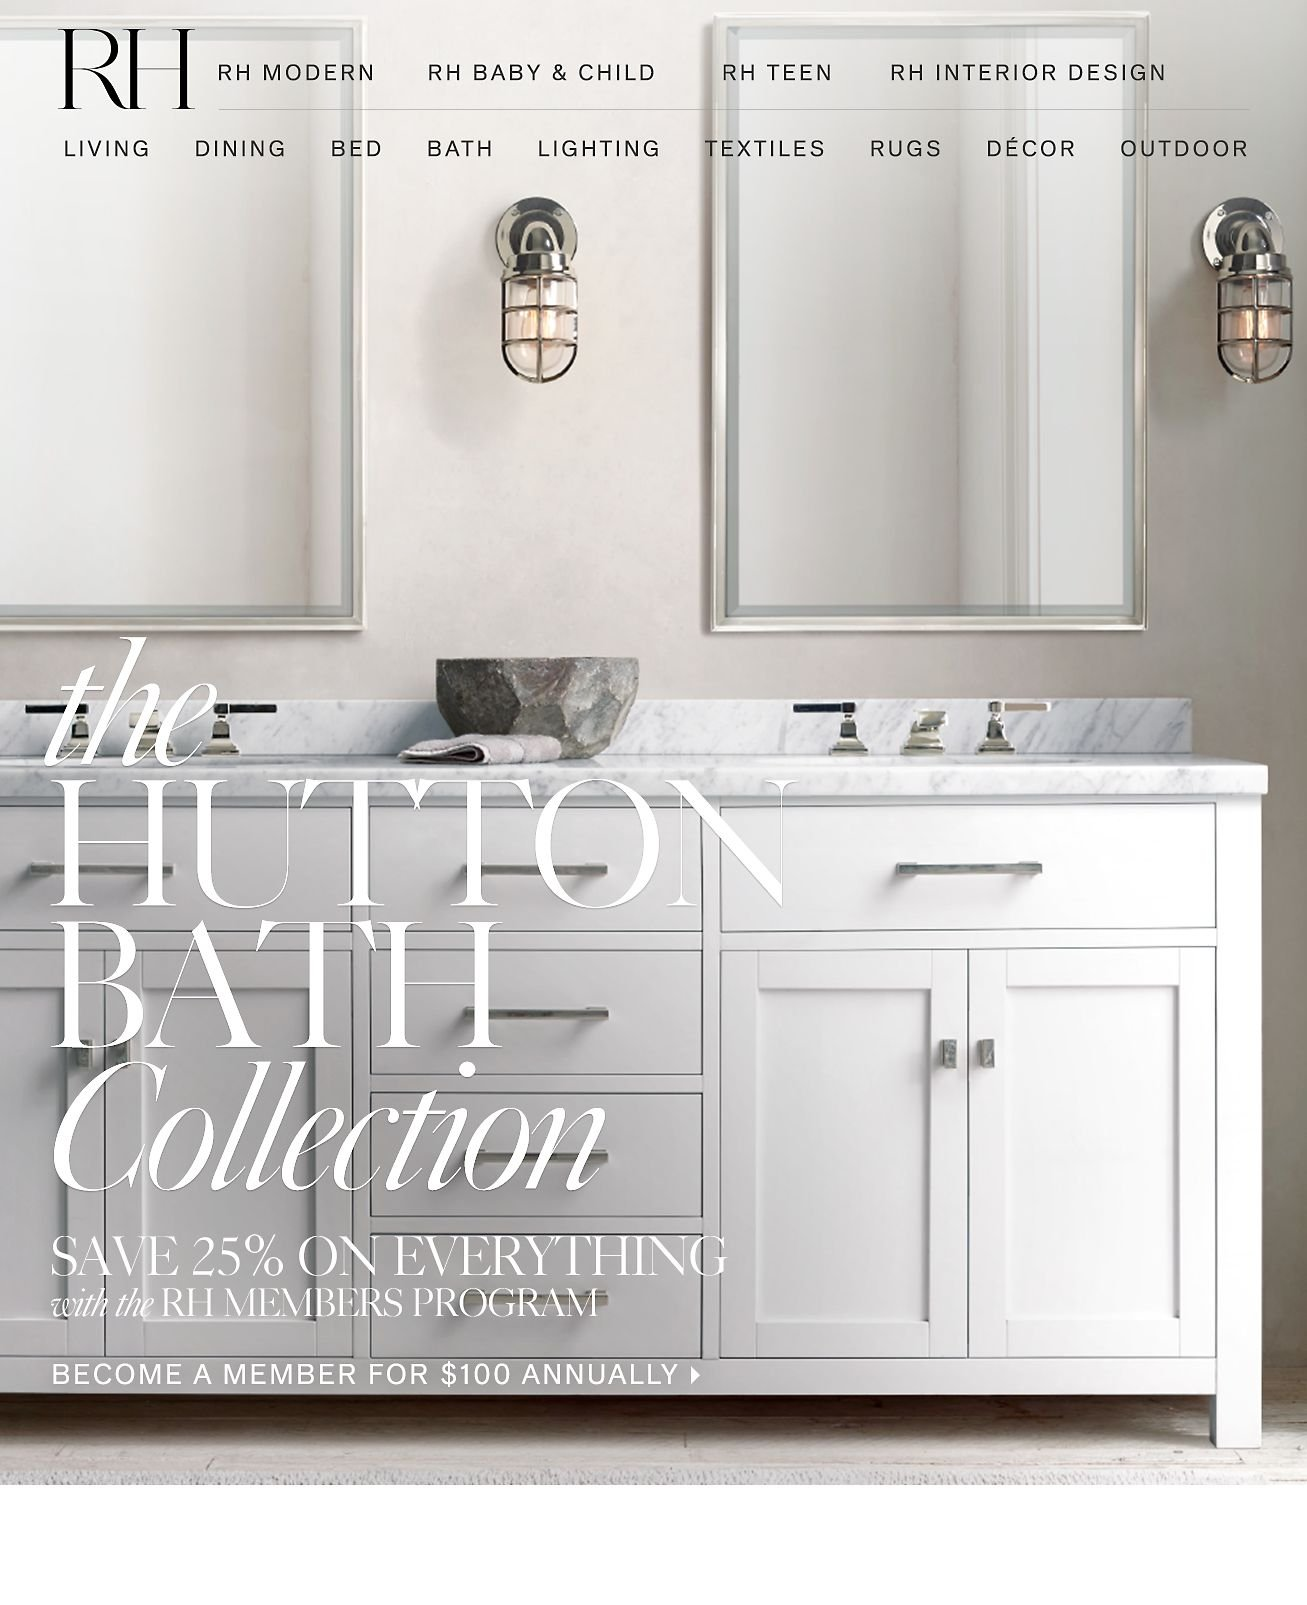 Bathroom Lights Restoration Hardware restoration hardware: the well-appointed bath. save 25% on